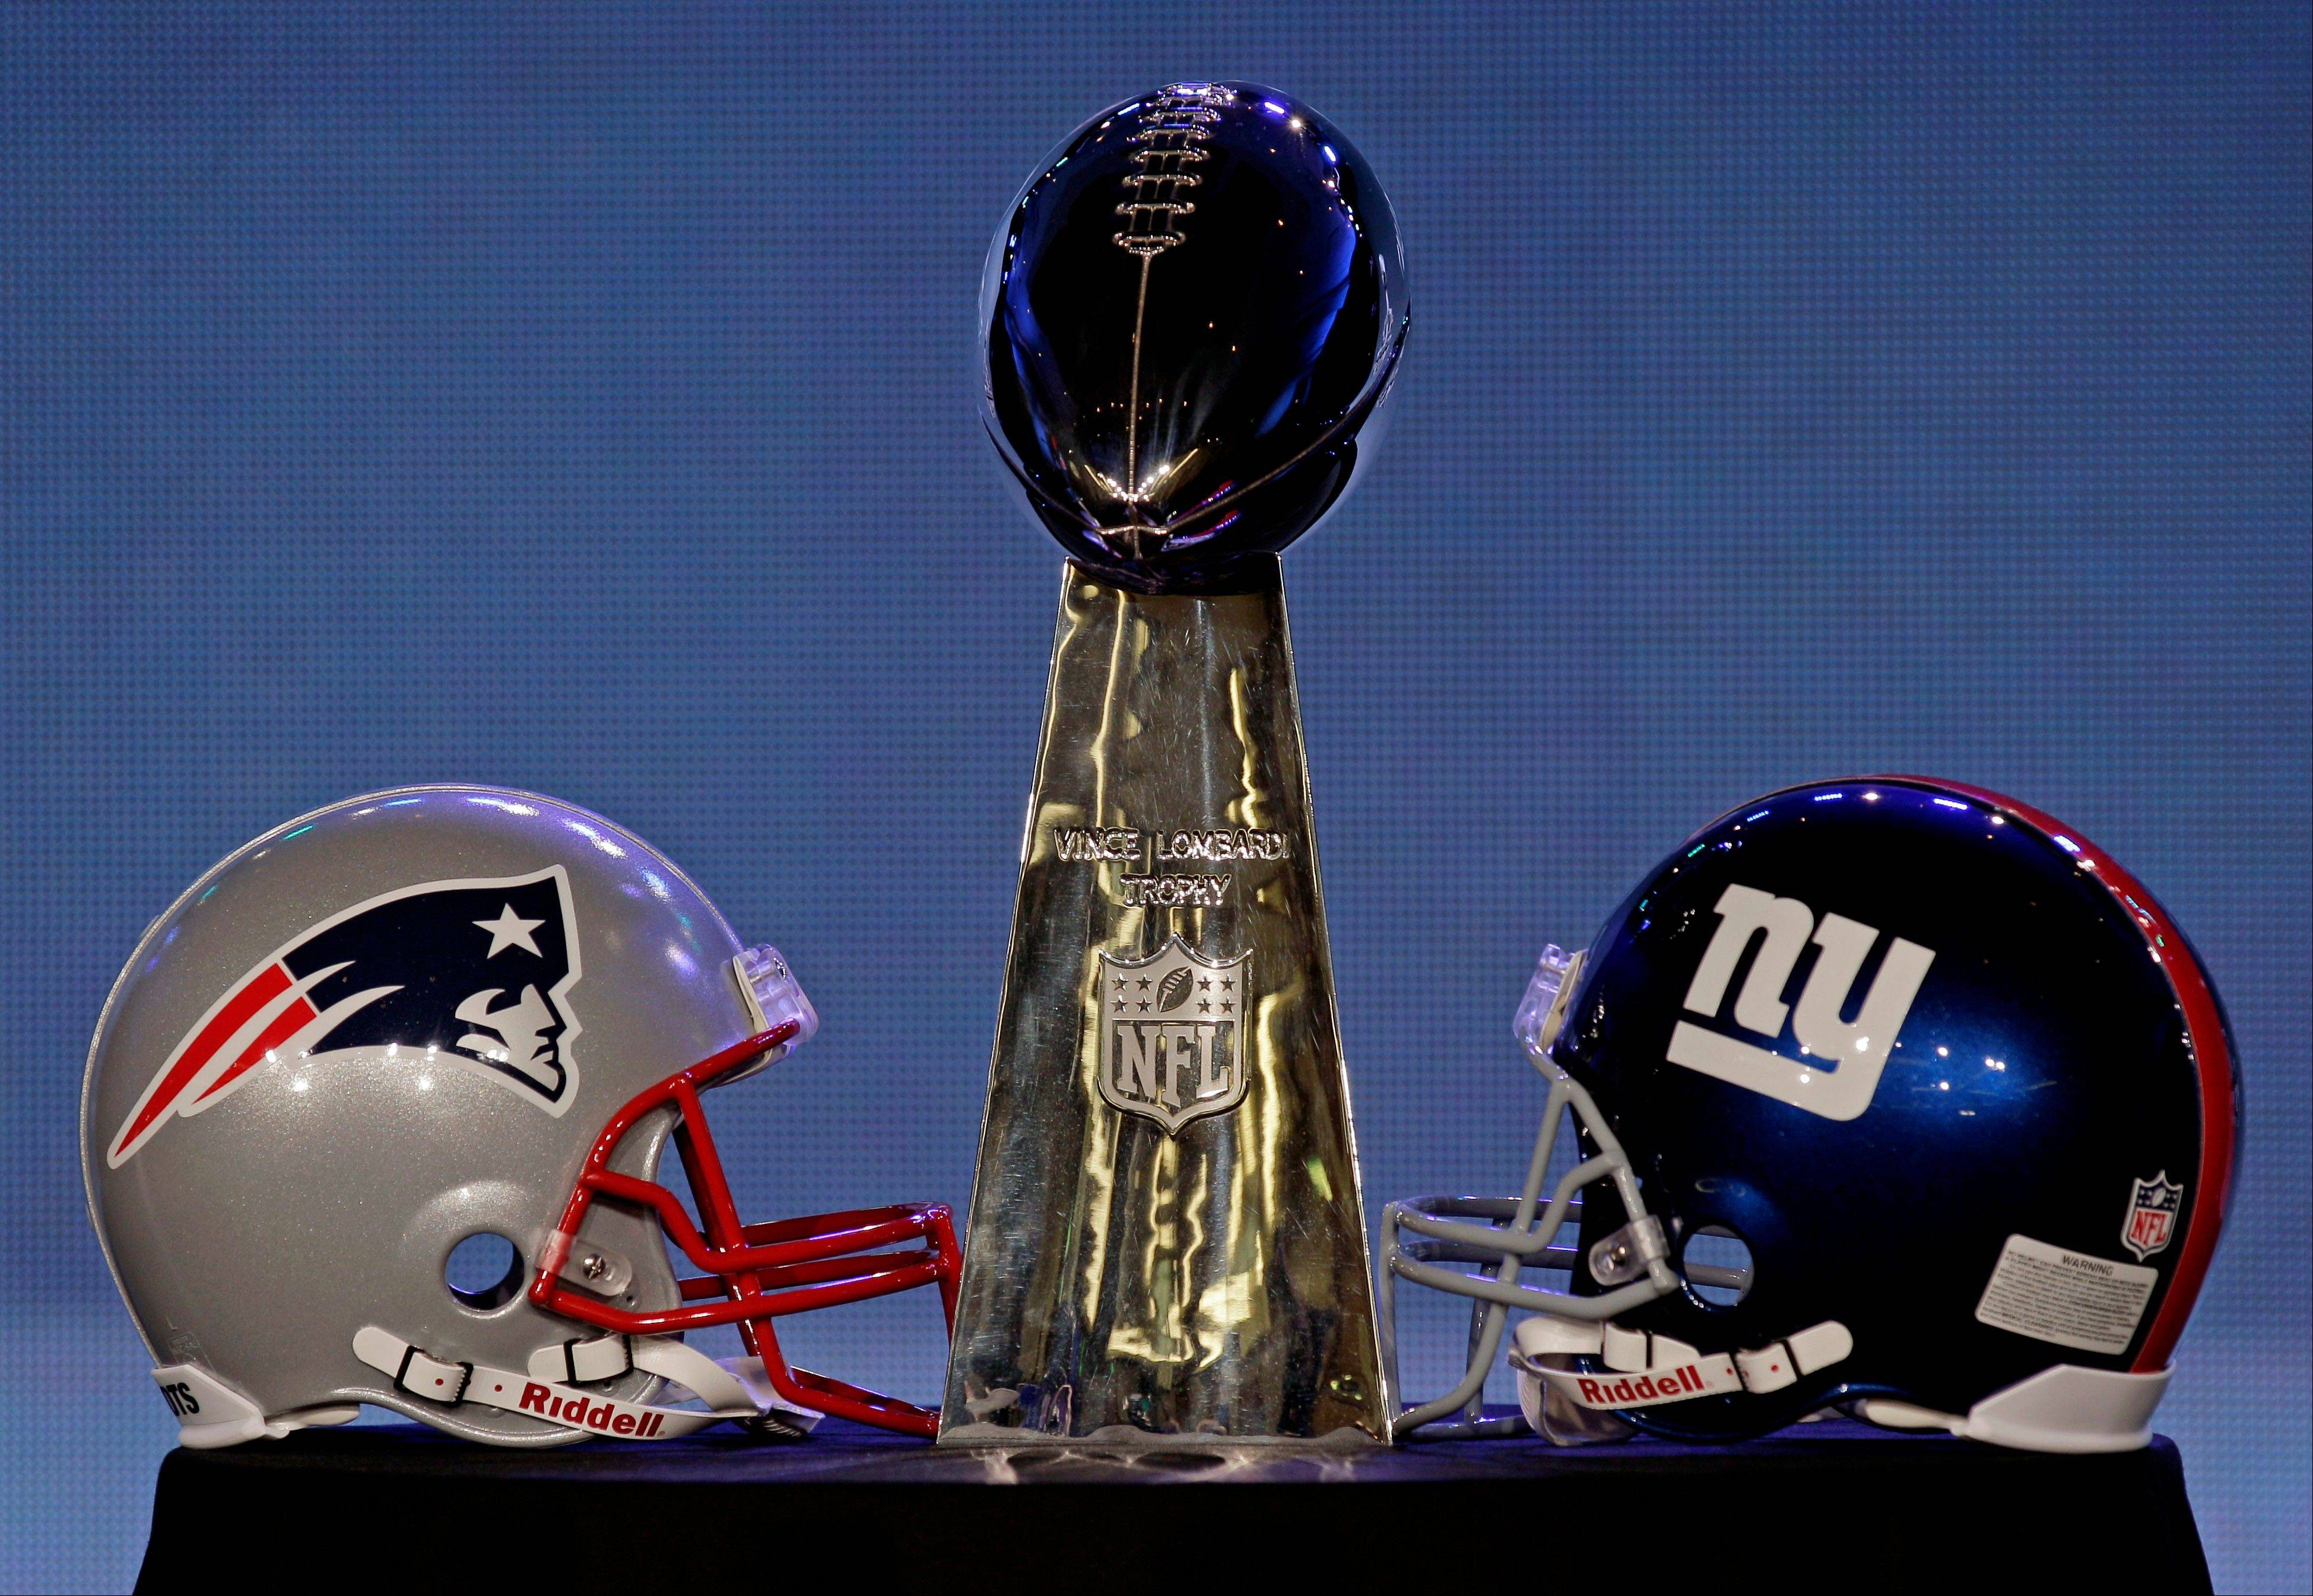 The New England Patriots and the New York Giants will battle for the Vince Lombardi Trophy in Indianapolis Sunday. Super Bowl XLVI kicks off about 5:30 p.m. Sunday, and our writers offer their predictions in this report.